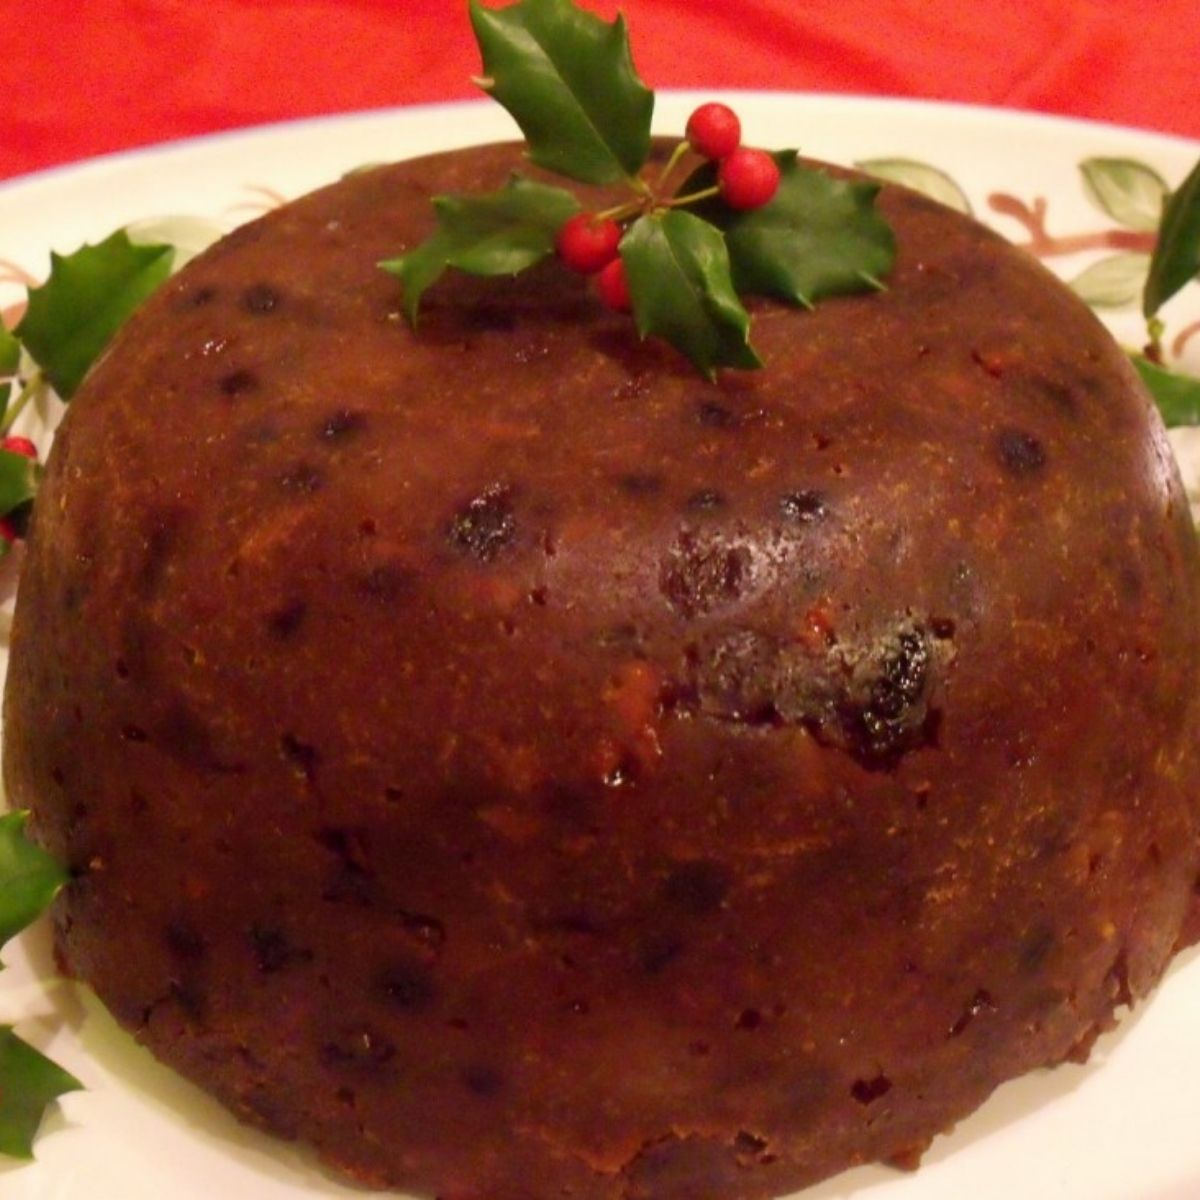 A brown Christmas pudding on a platter with holly on top as a decoration